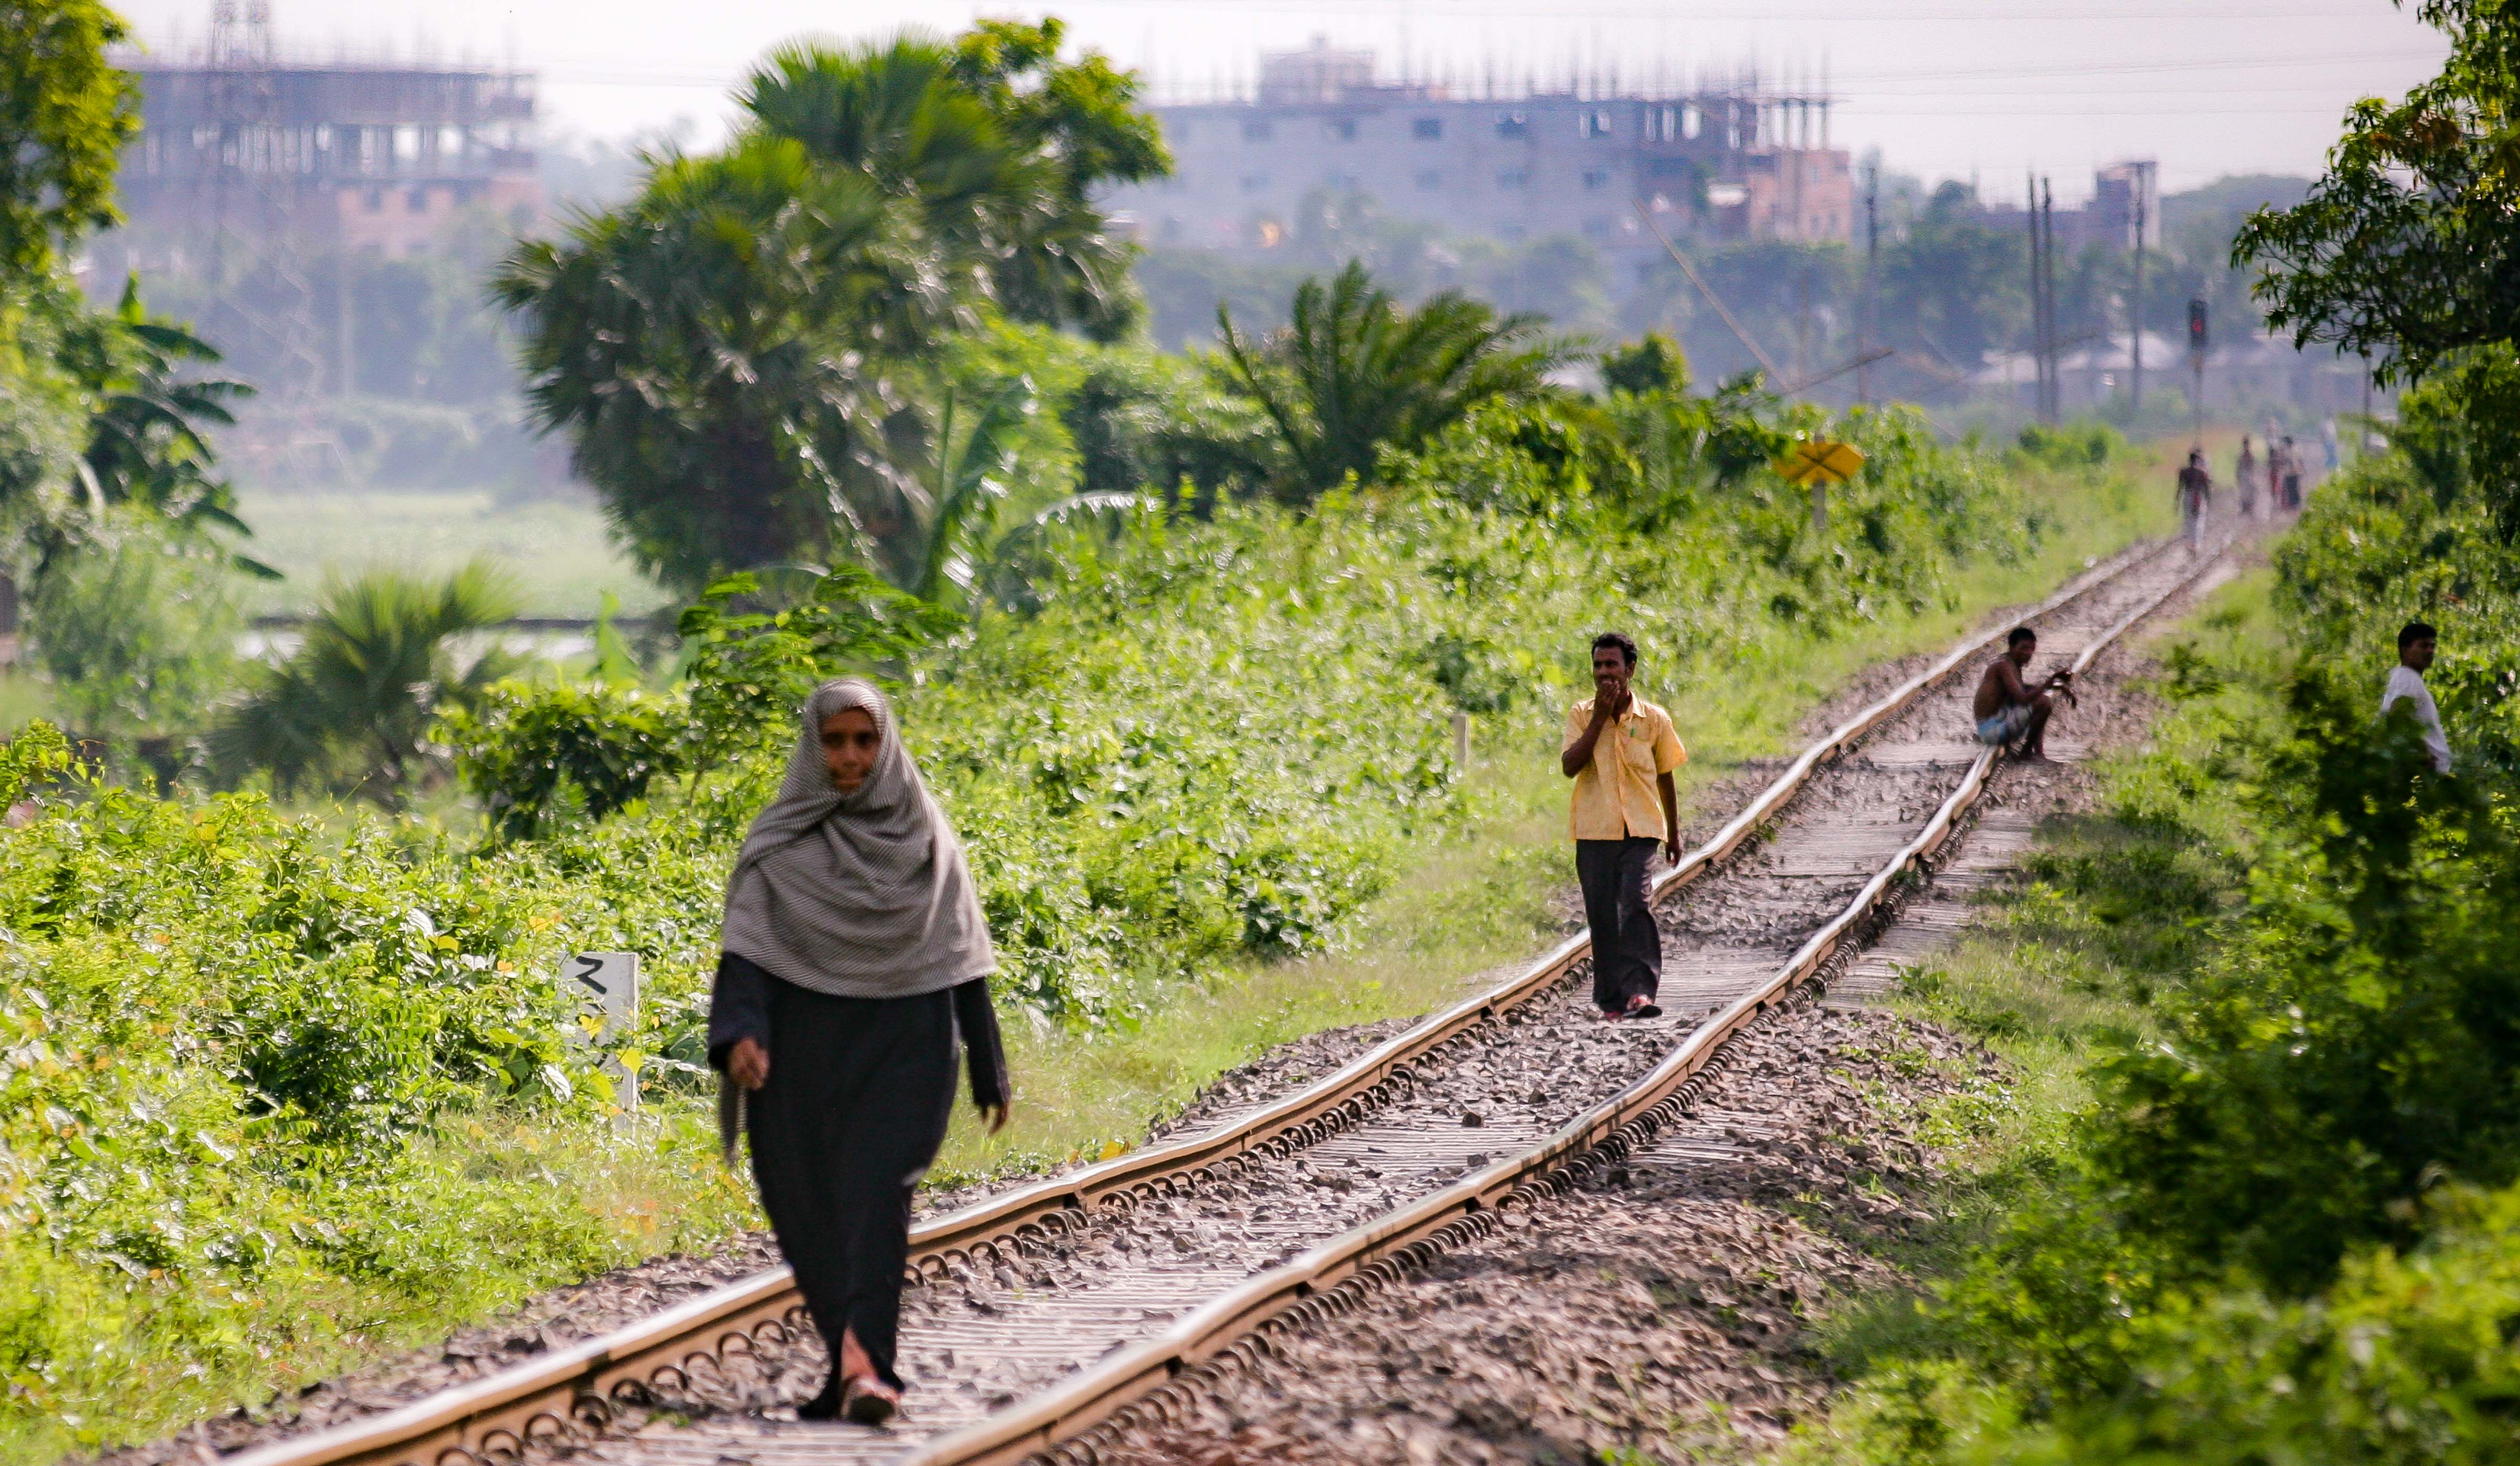 Bangladesh, Gazipur Prov, People On Tracks, 2009, IMG 7983